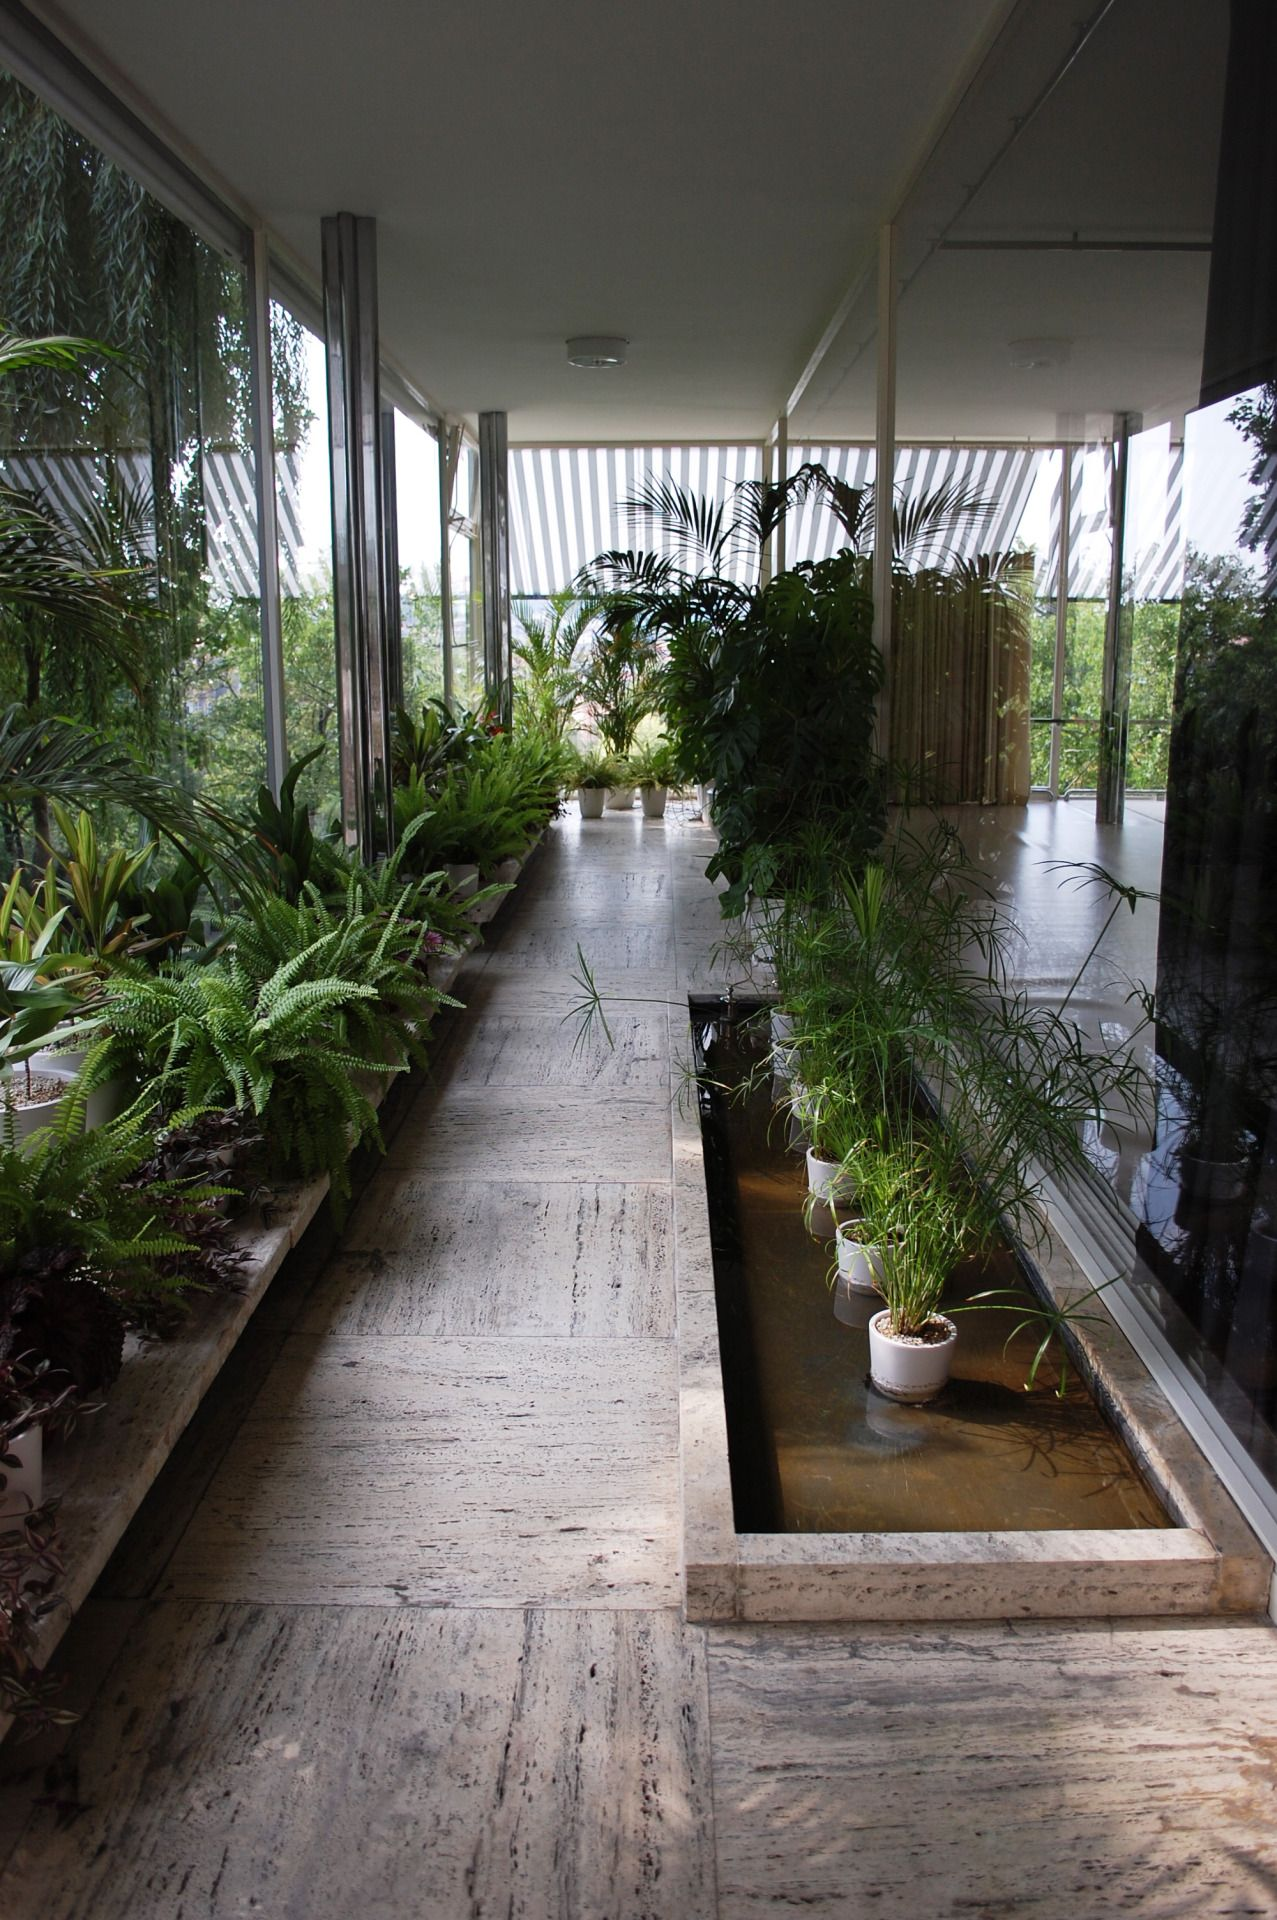 The villa tugendhat in brno by ludwig mies van der rohe for Design apartment udolni brno